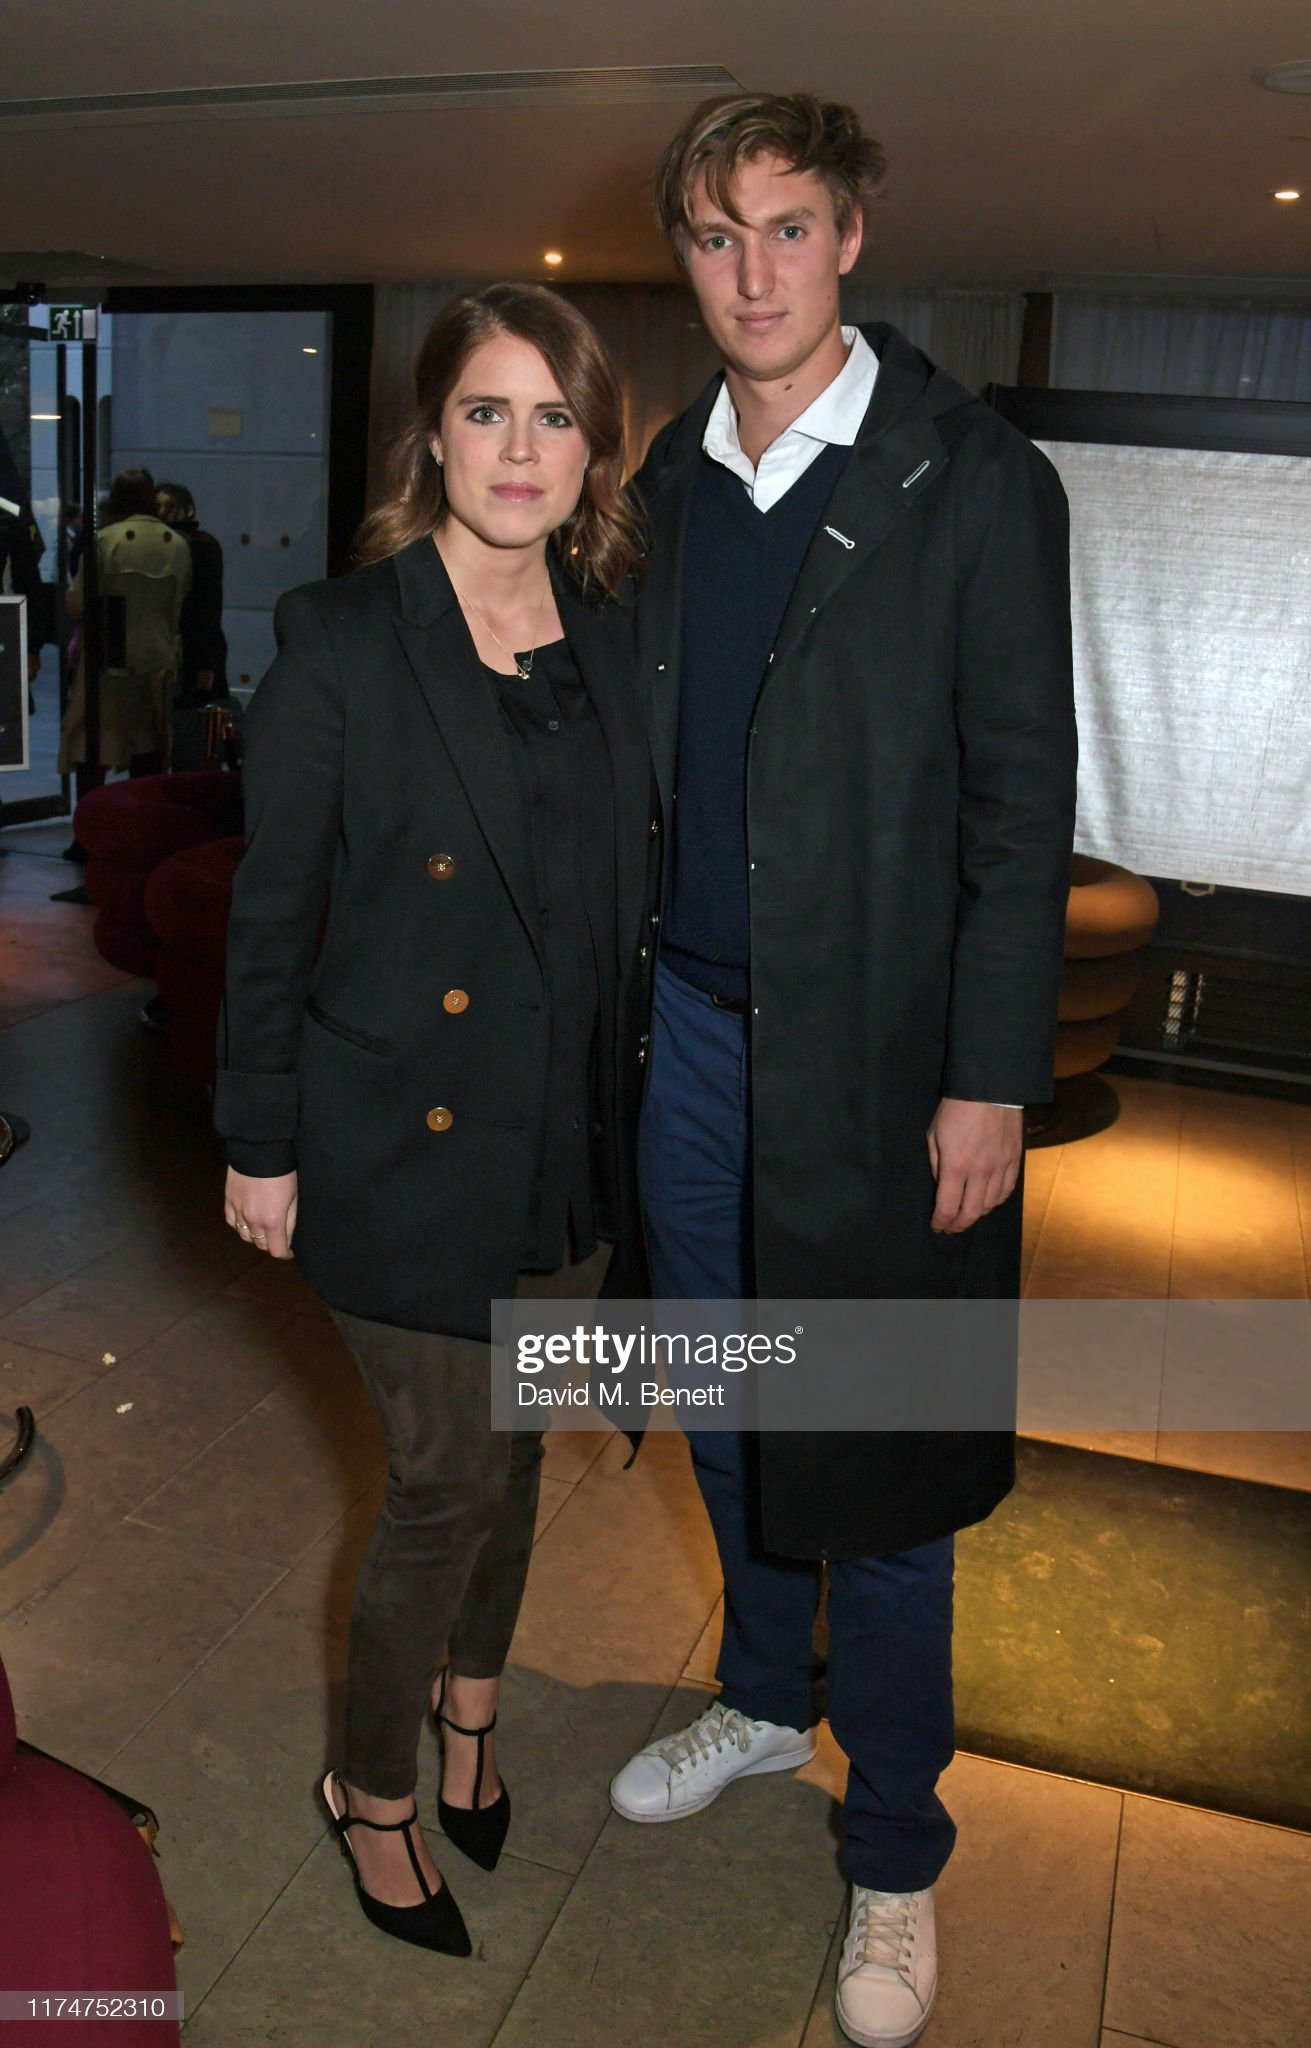 https://media.gettyimages.com/photos/princess-eugenie-of-york-and-lucas-zwirner-attend-a-special-screening-picture-id1174752310?s=2048x2048